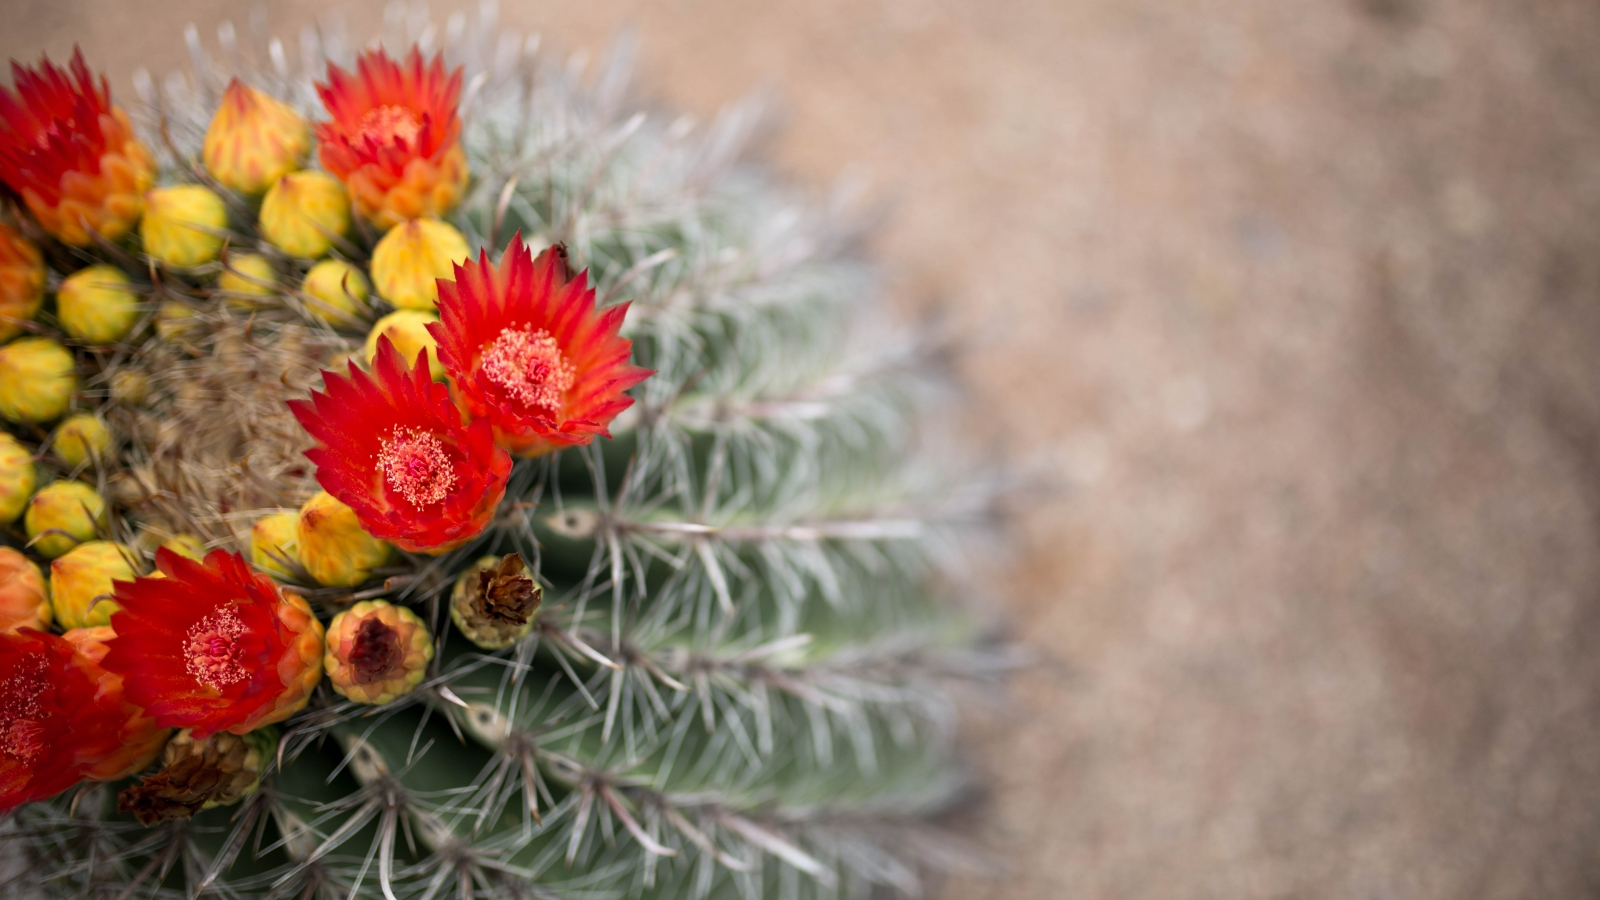 cactus with a crown of red and yellow flowers